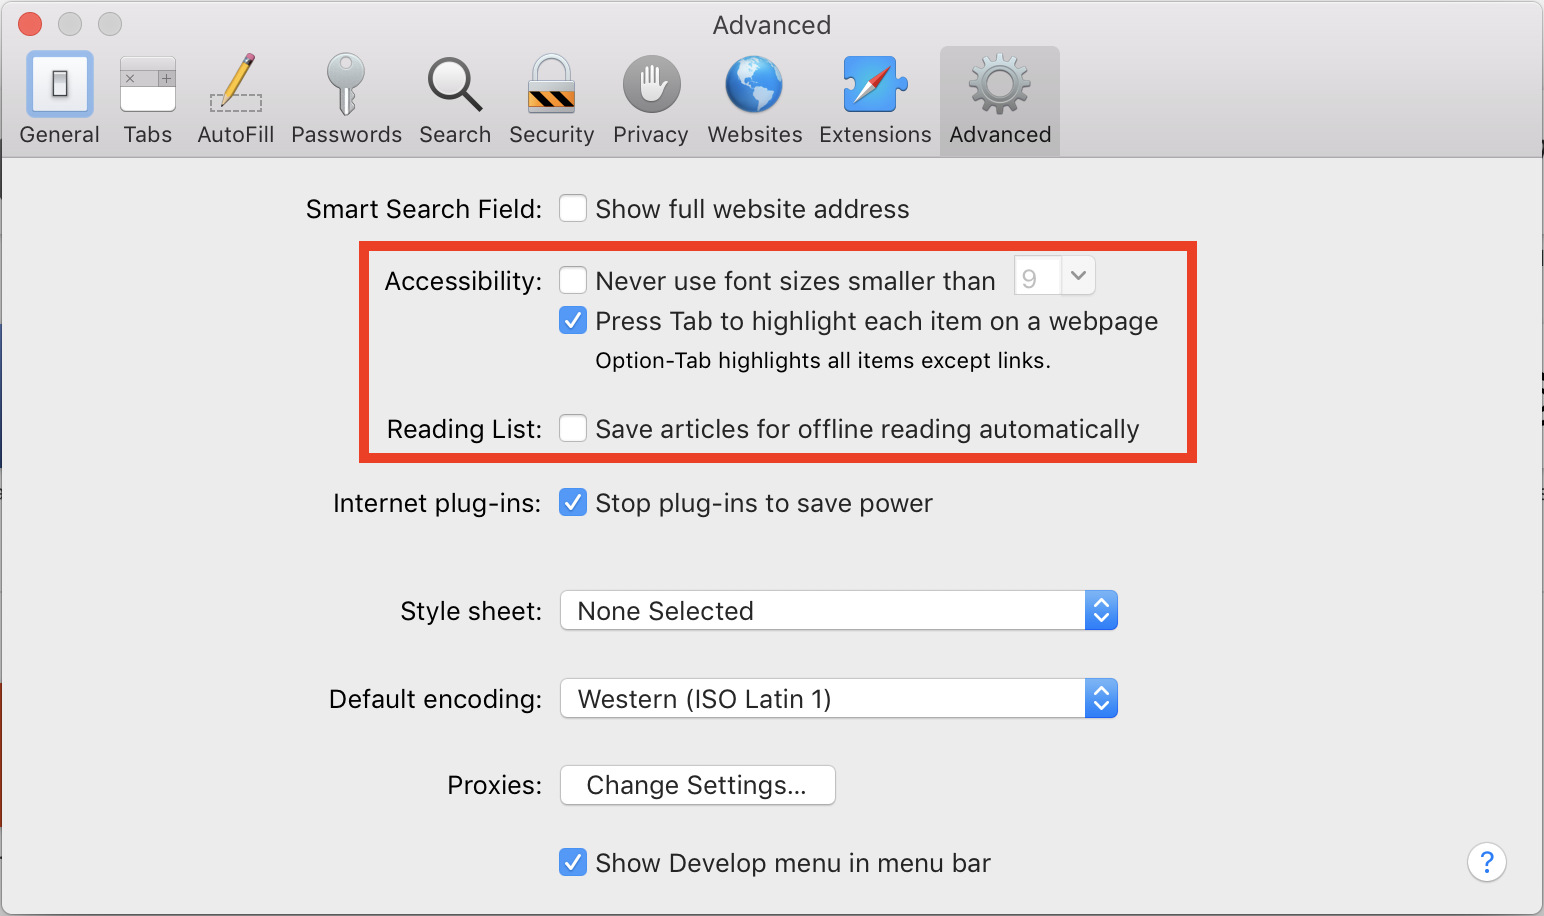 Screenshot of Safari's Advanced preferences, with Accessibility preferences outlined in red